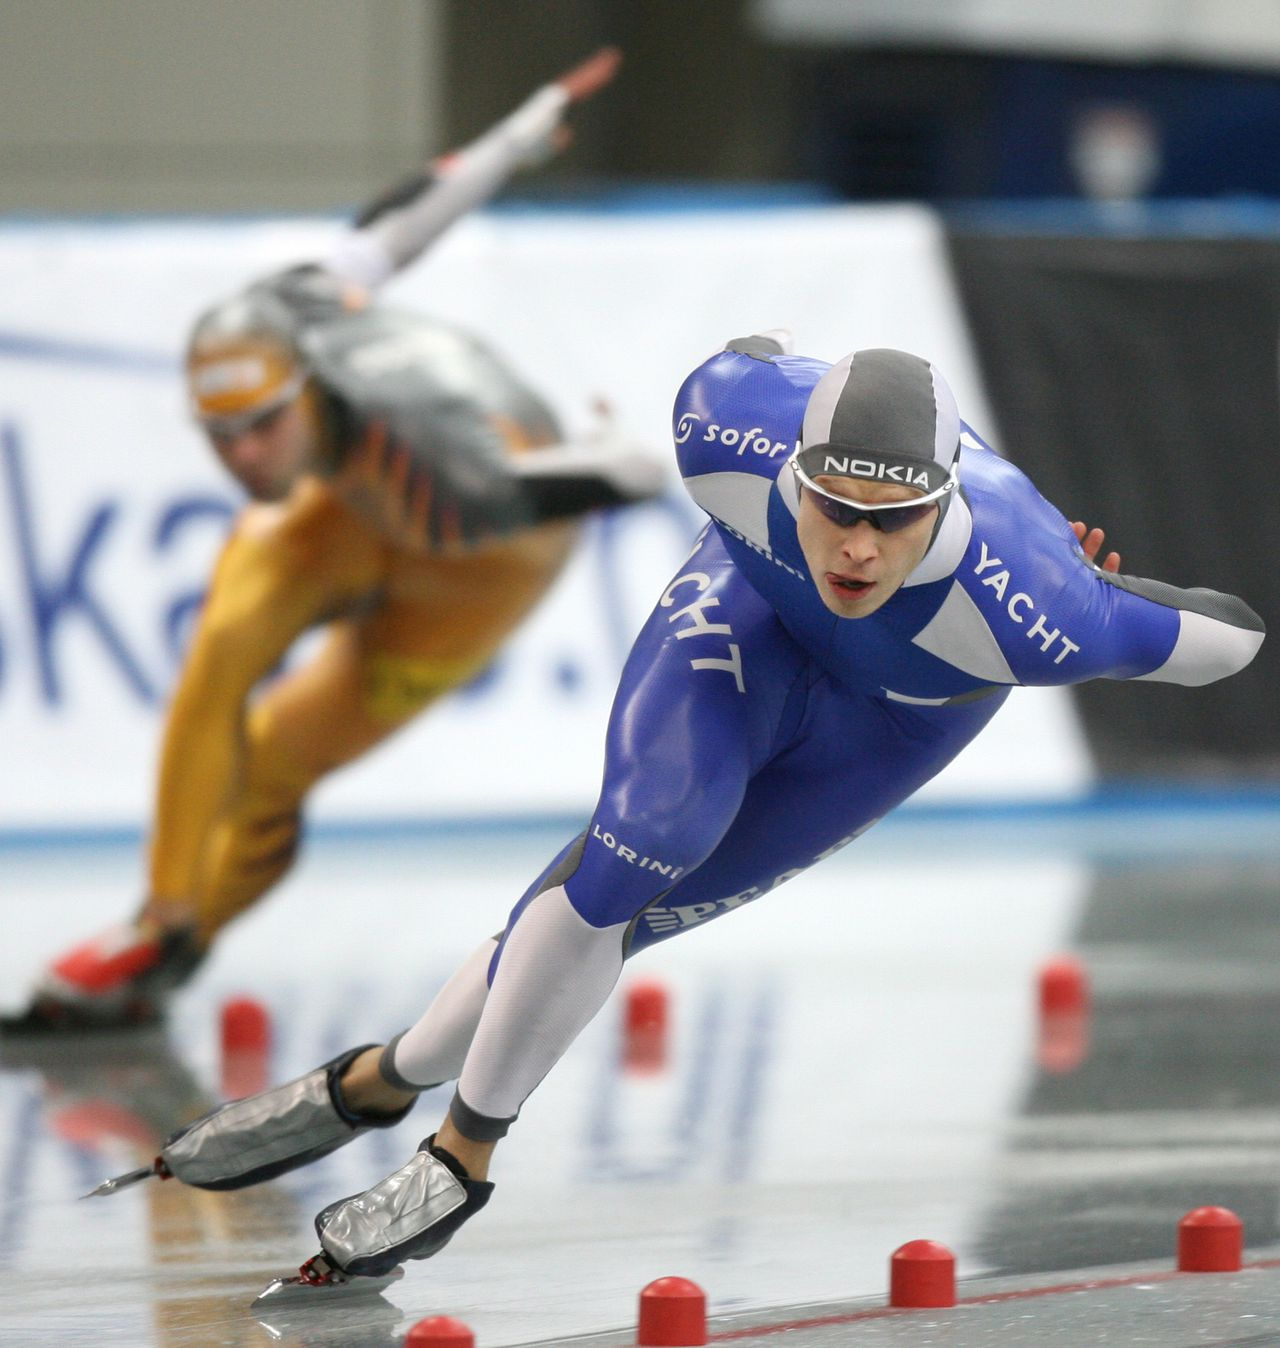 """Pekka Koskela: """"Als ik goed schaats, eindig ik in de top."""" Foto AFP Pekka Koskela of Finland (R) leads against Canadian Francois Olivier Roberge in a race of the men's 1,000m division A at the World Cup Speed Skating in Nagano, 09 December 2006. Koskela won the event with a time of 1:09.41 seconds. AFP PHOTO / KAZUHIRO NOGI"""